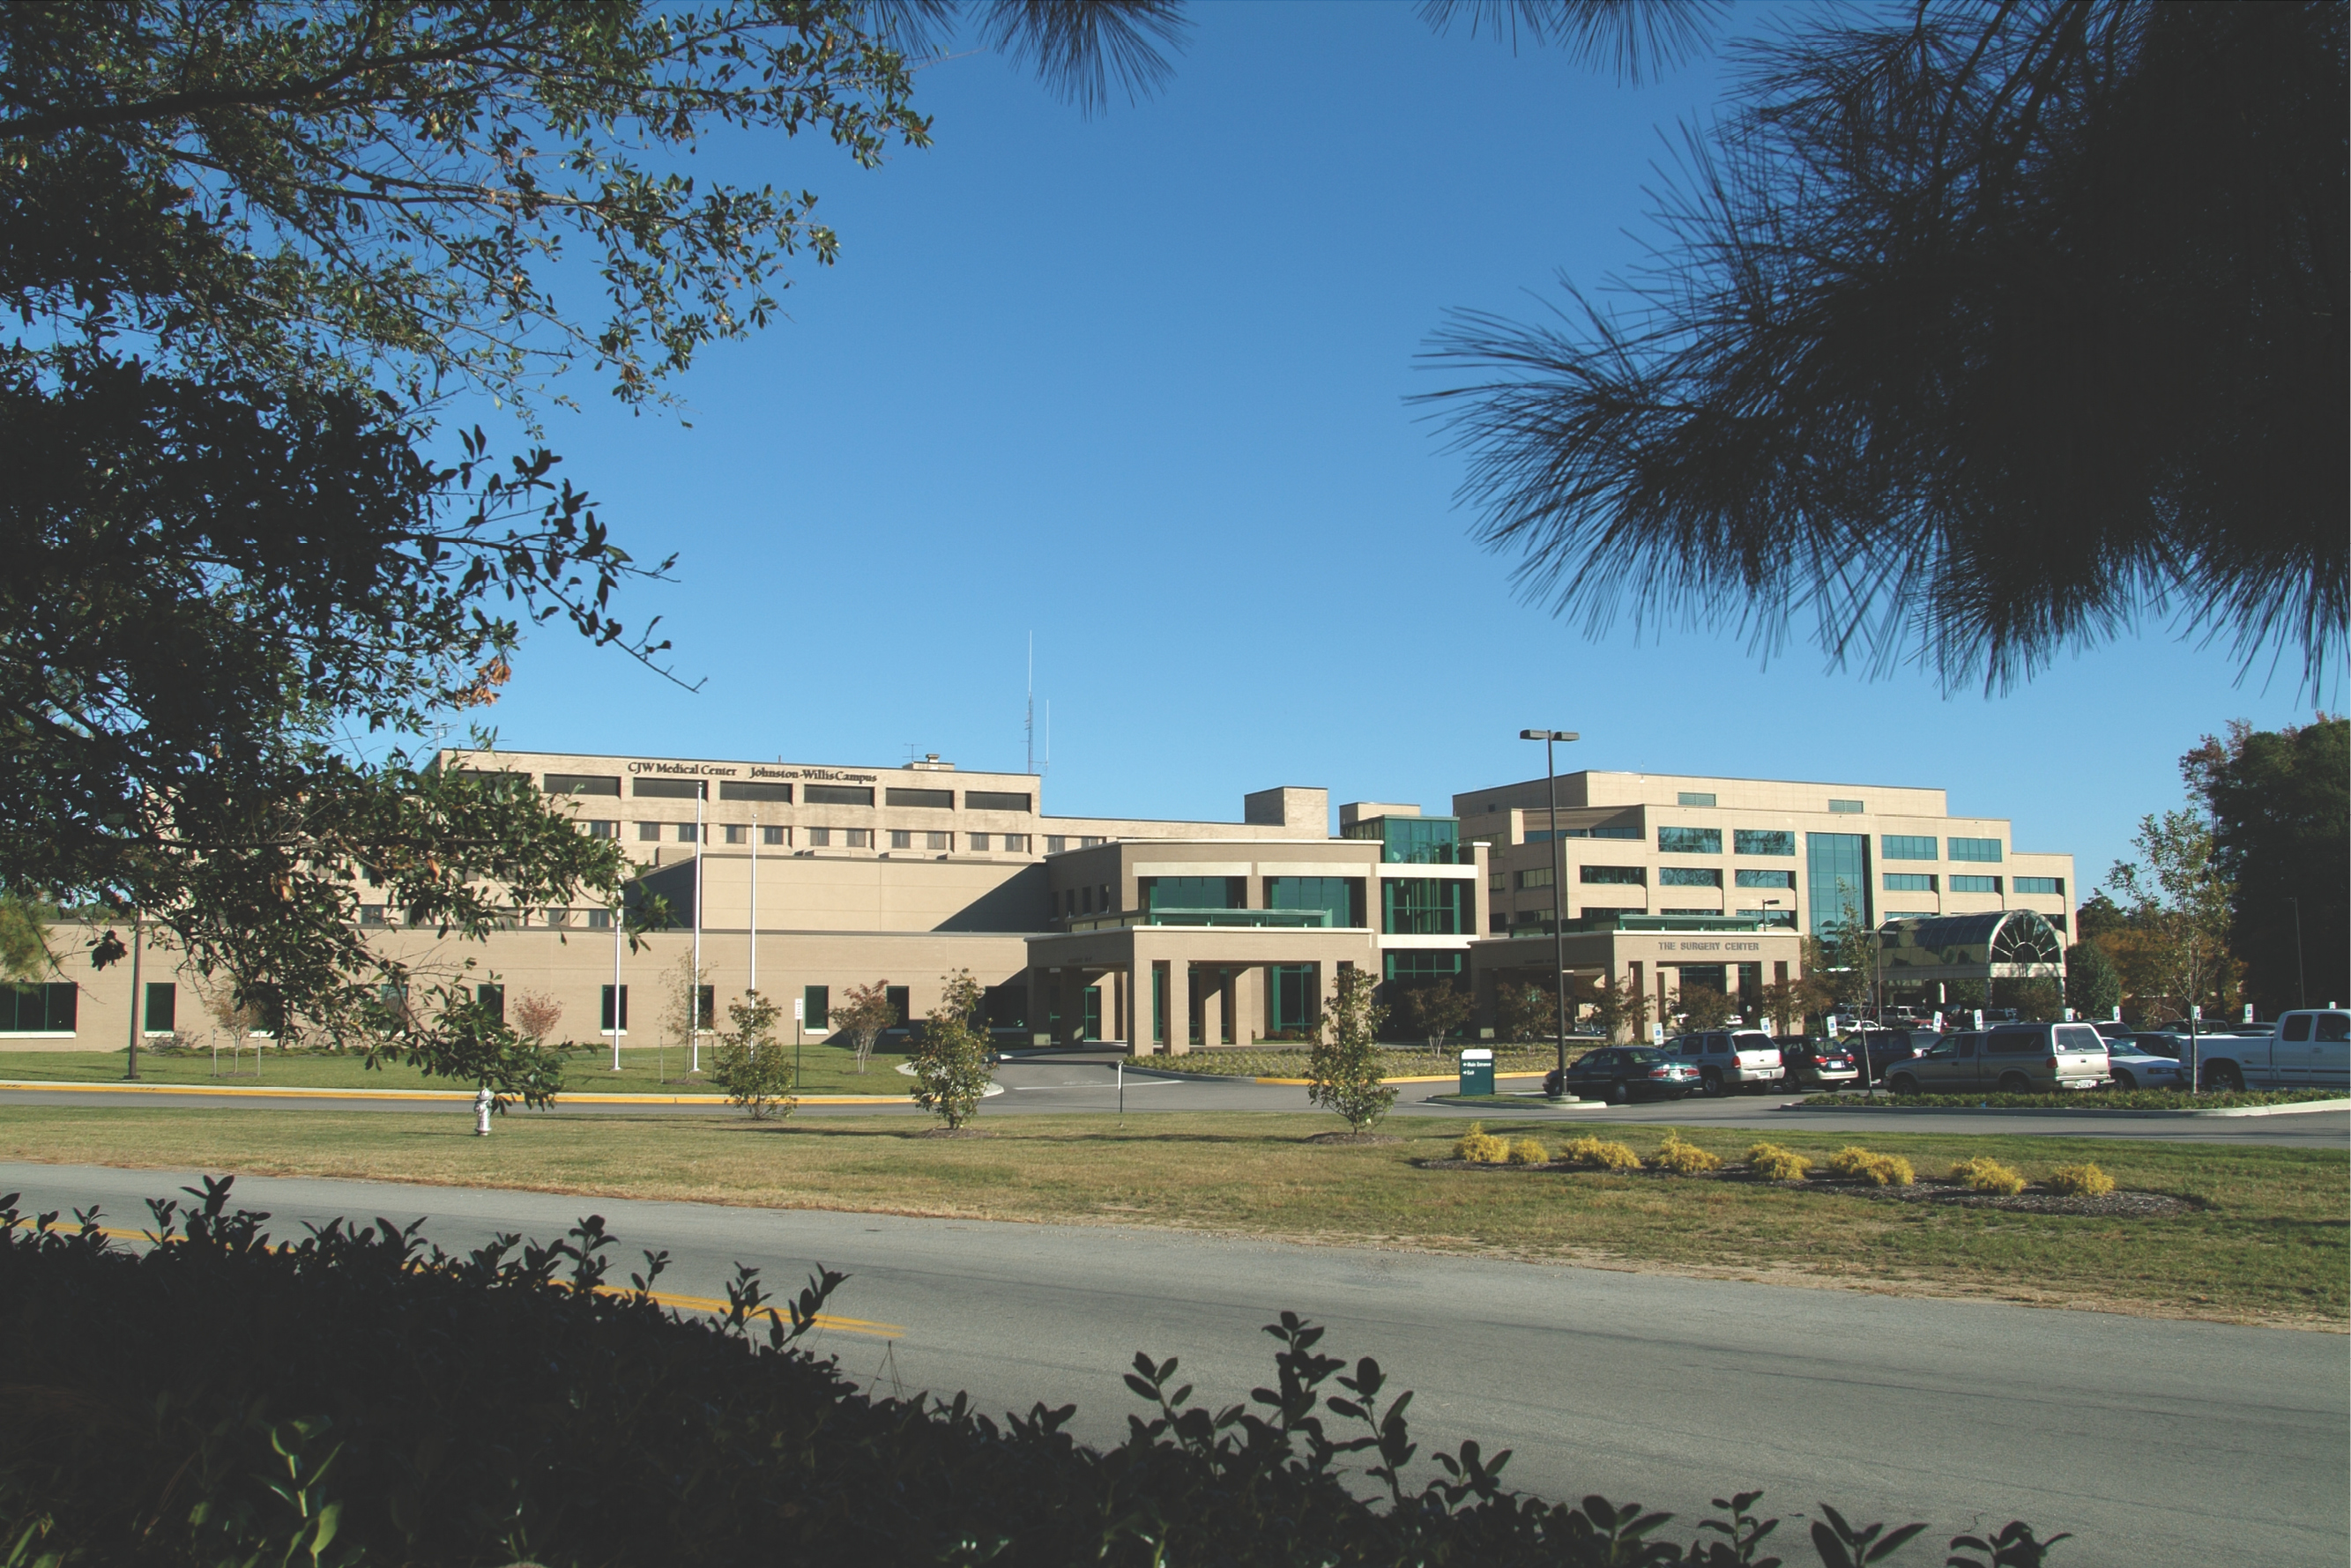 Johnston-Willis Hospital